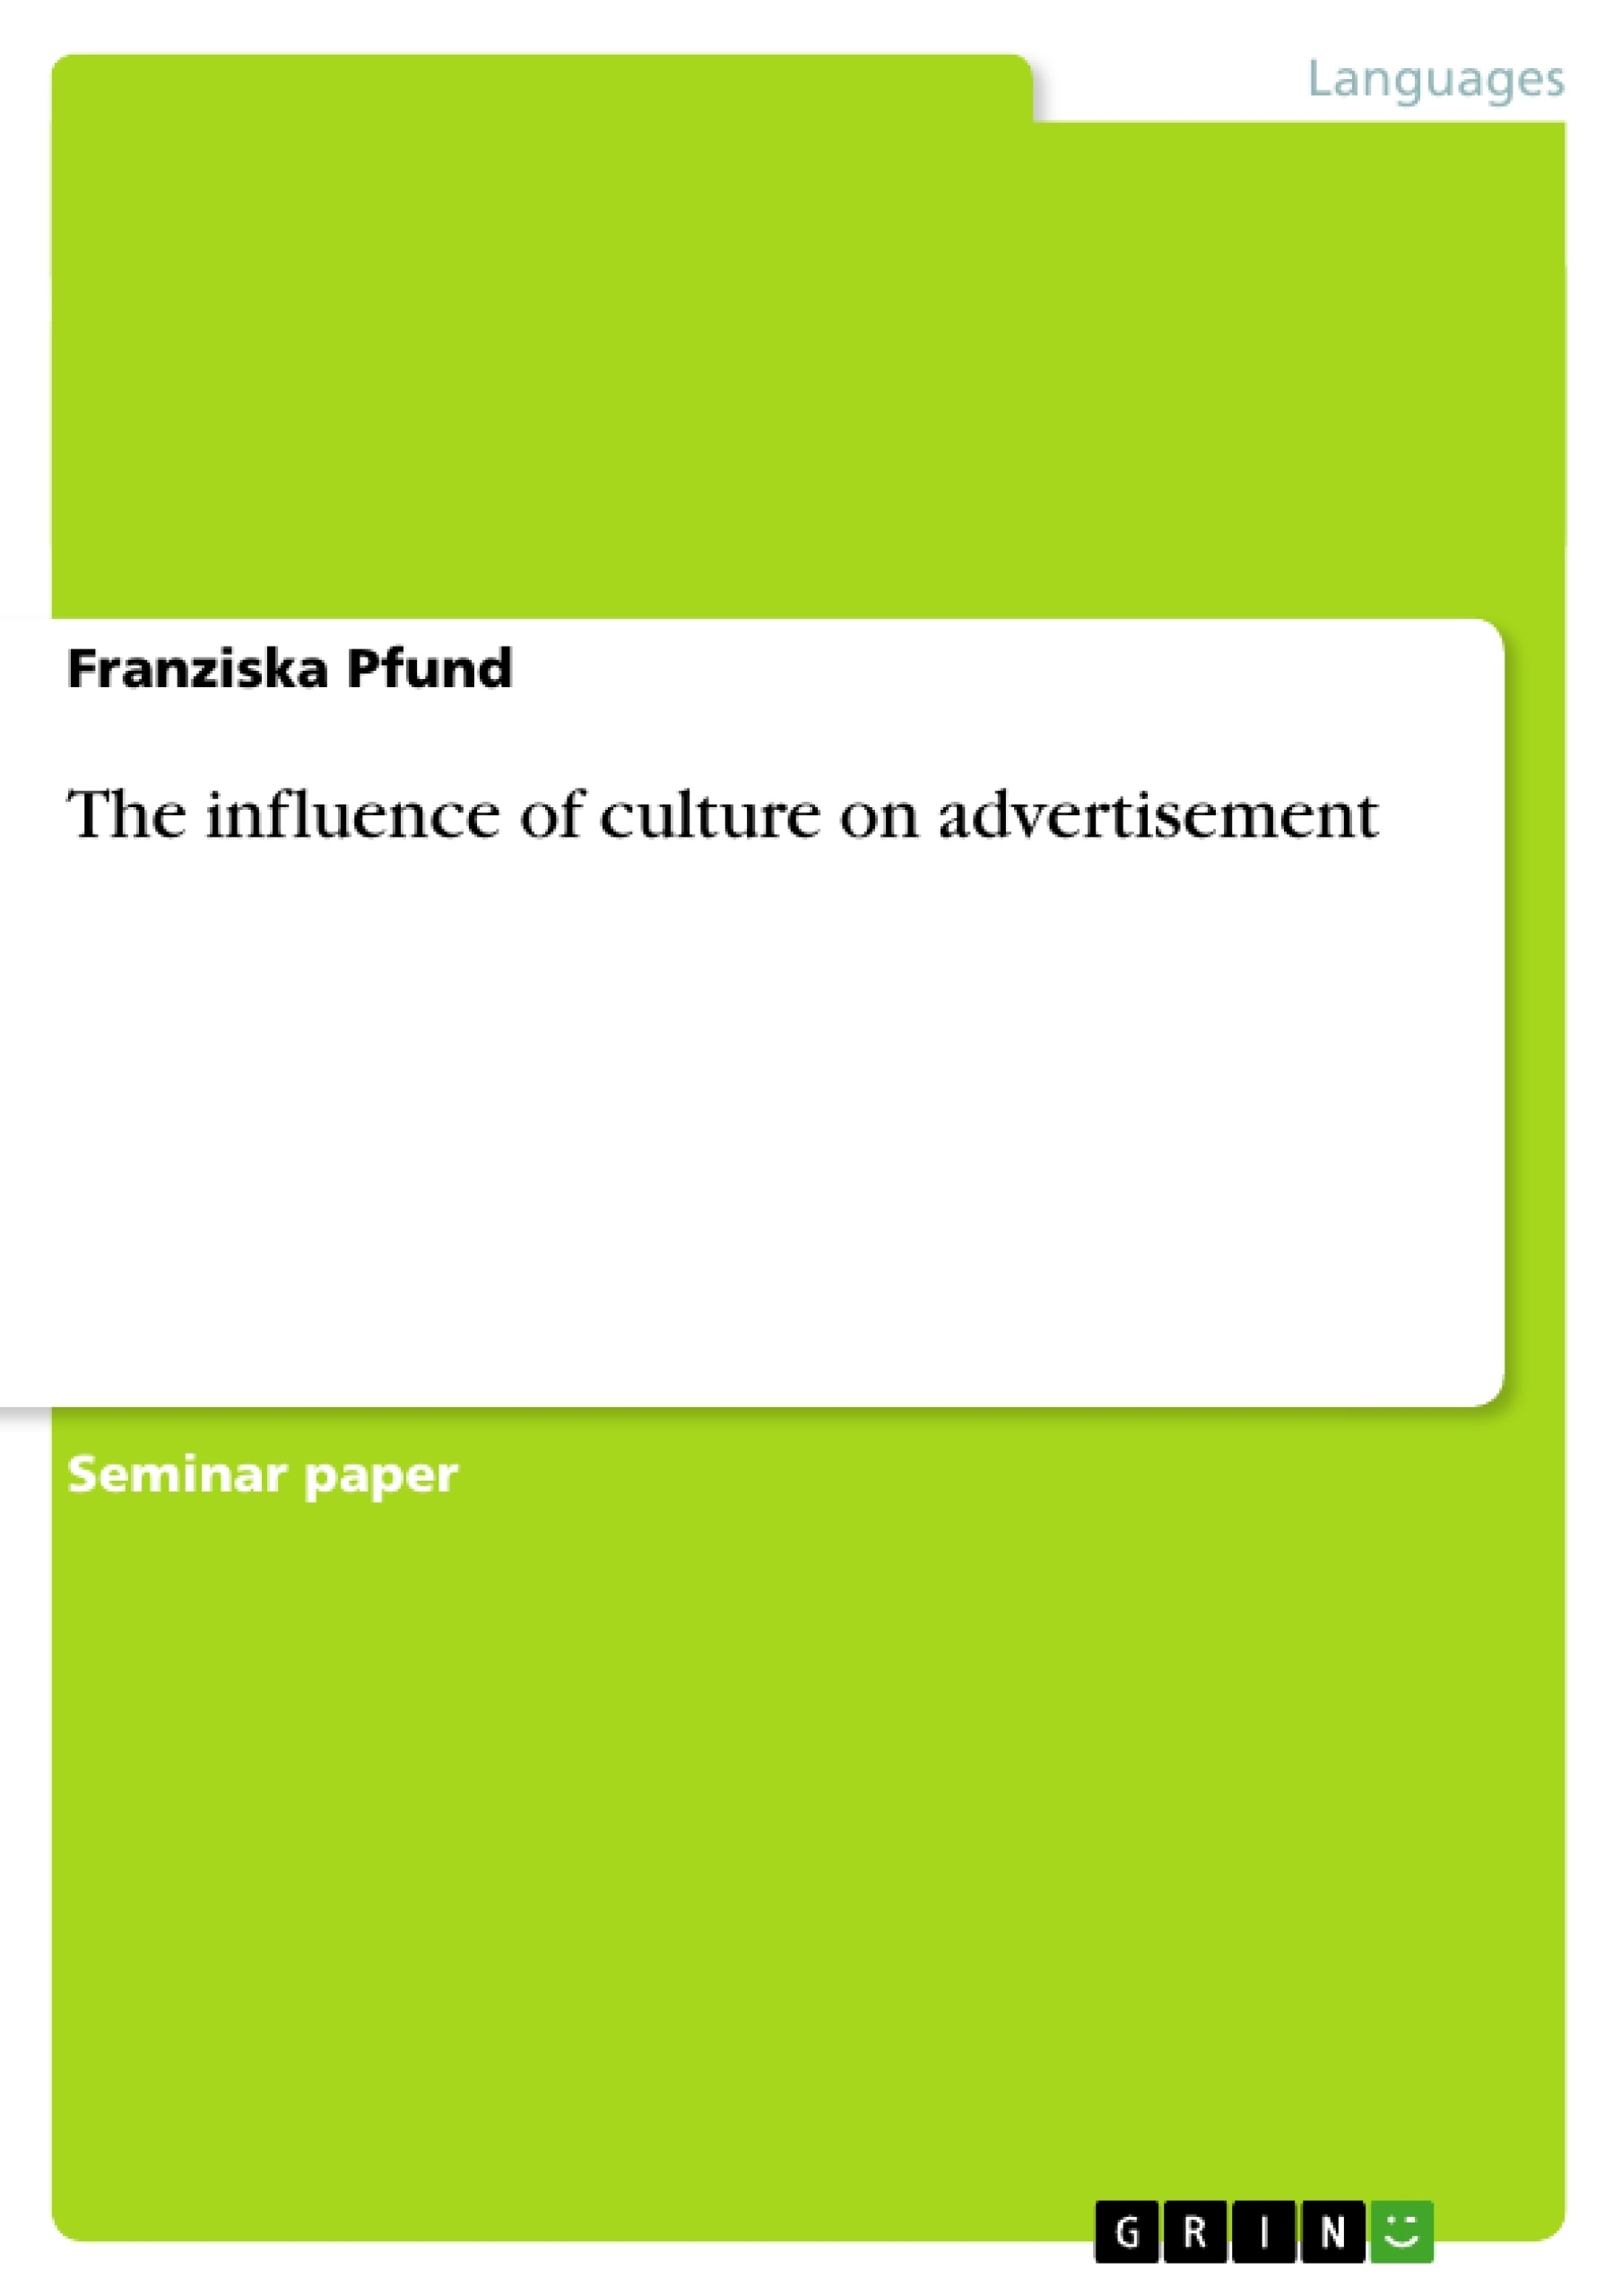 Title: The influence of culture on advertisement